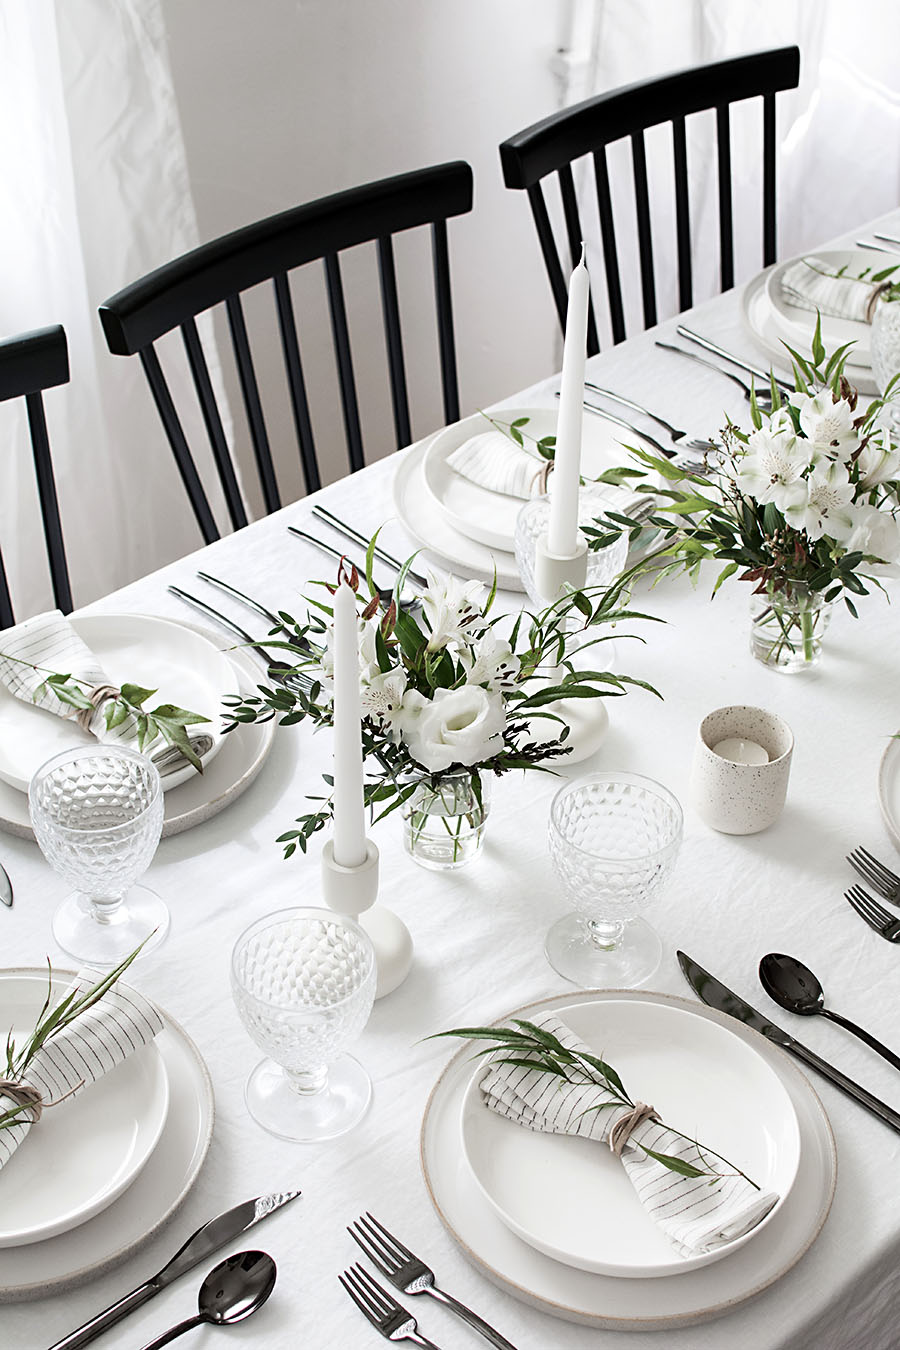 11 Simple Thanksgiving Table Decor Ideas